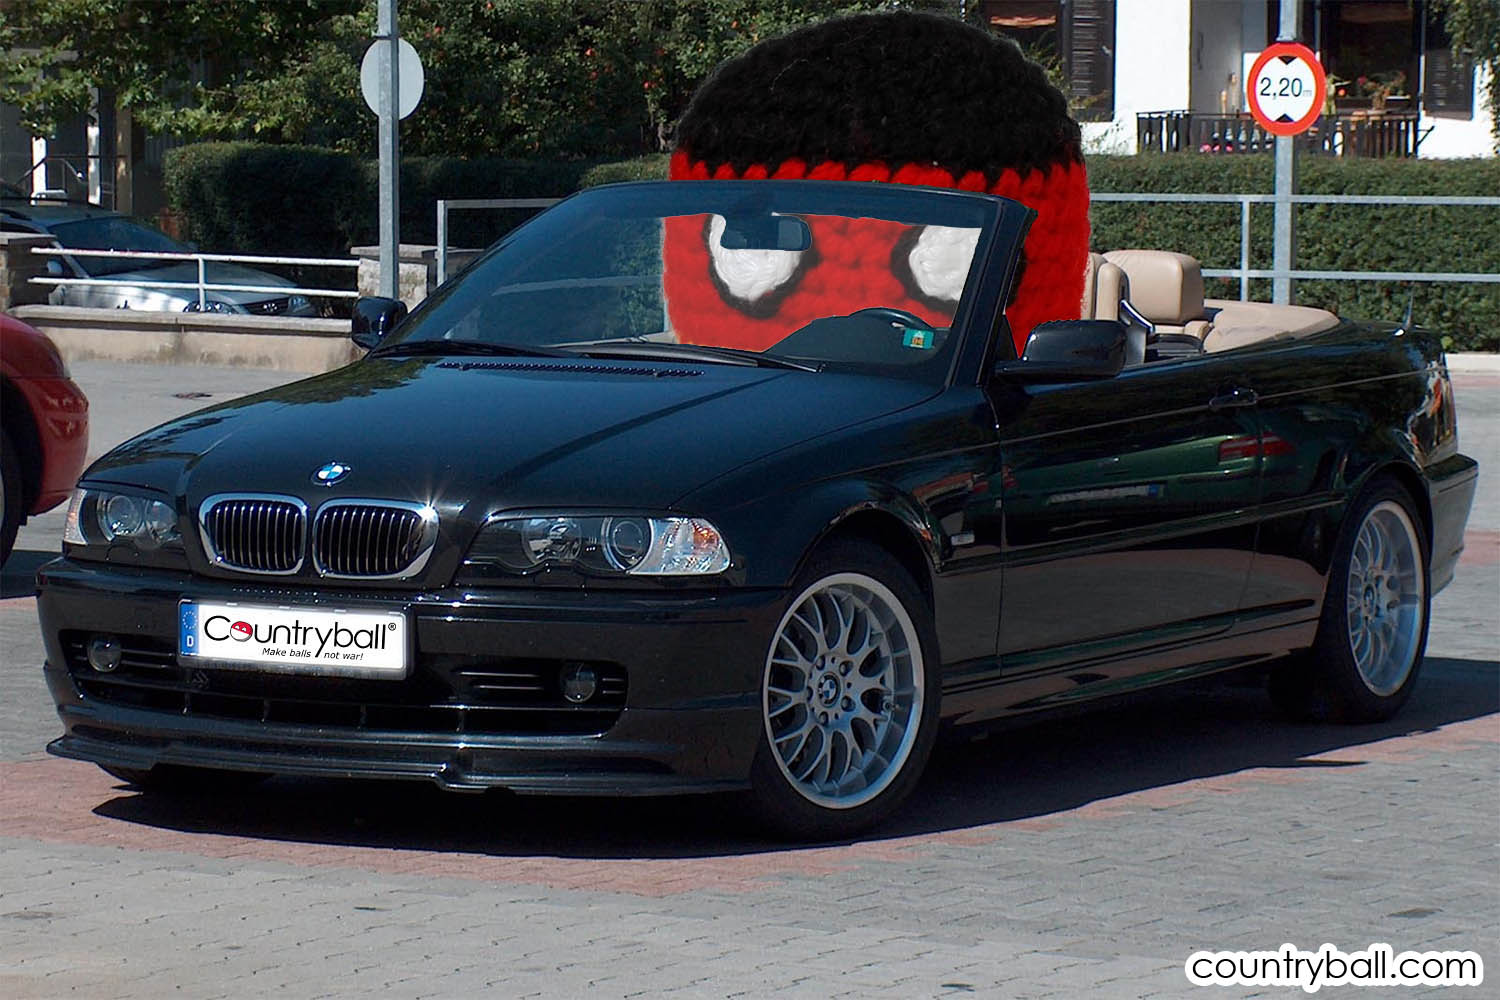 Germanyball is proud of his BMW